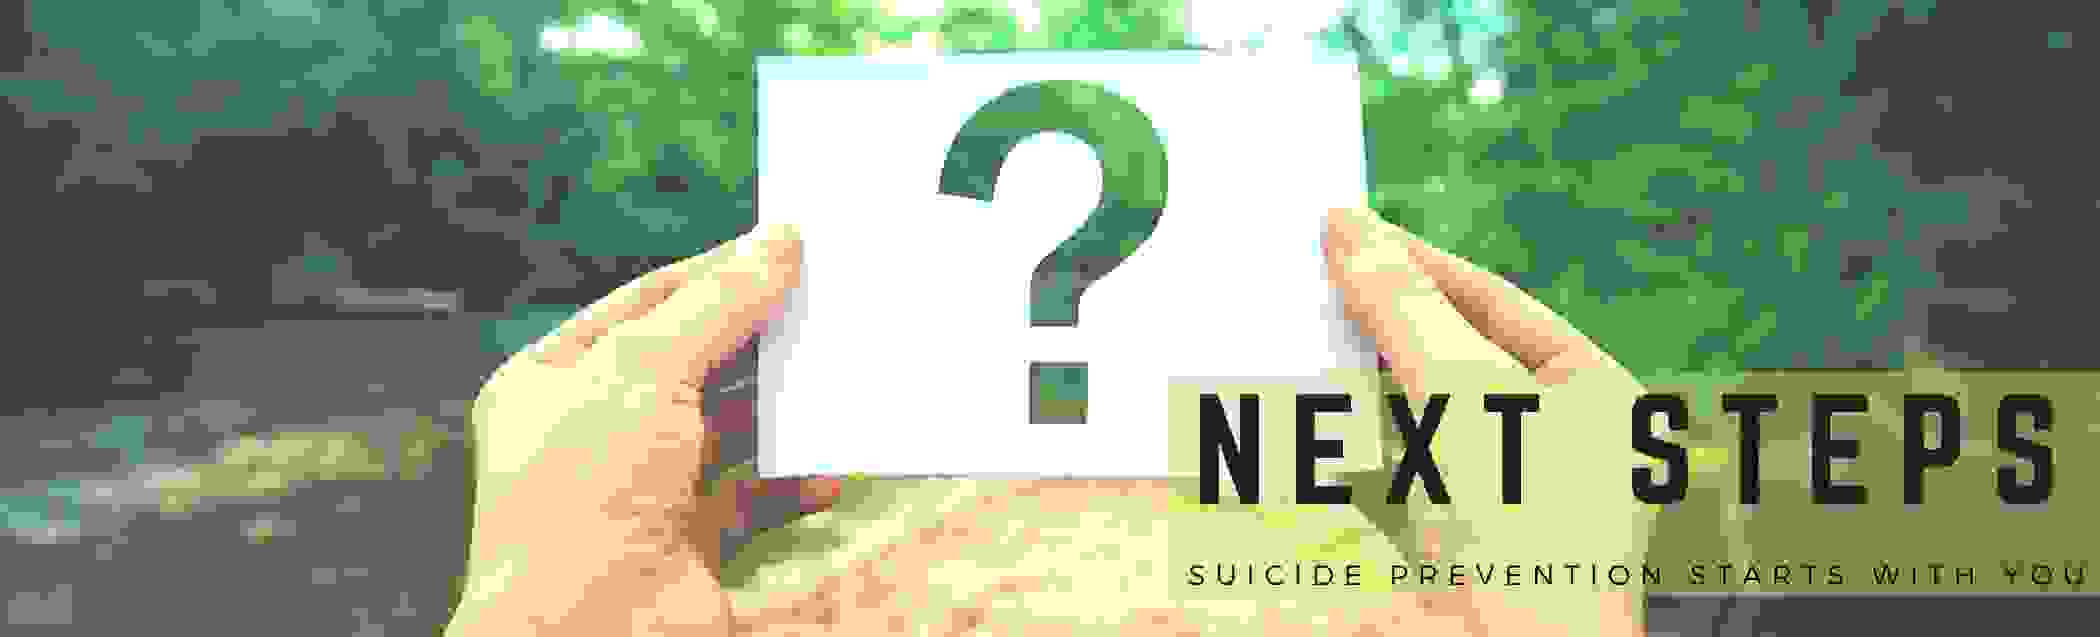 Next Steps suicide prevention to stop one